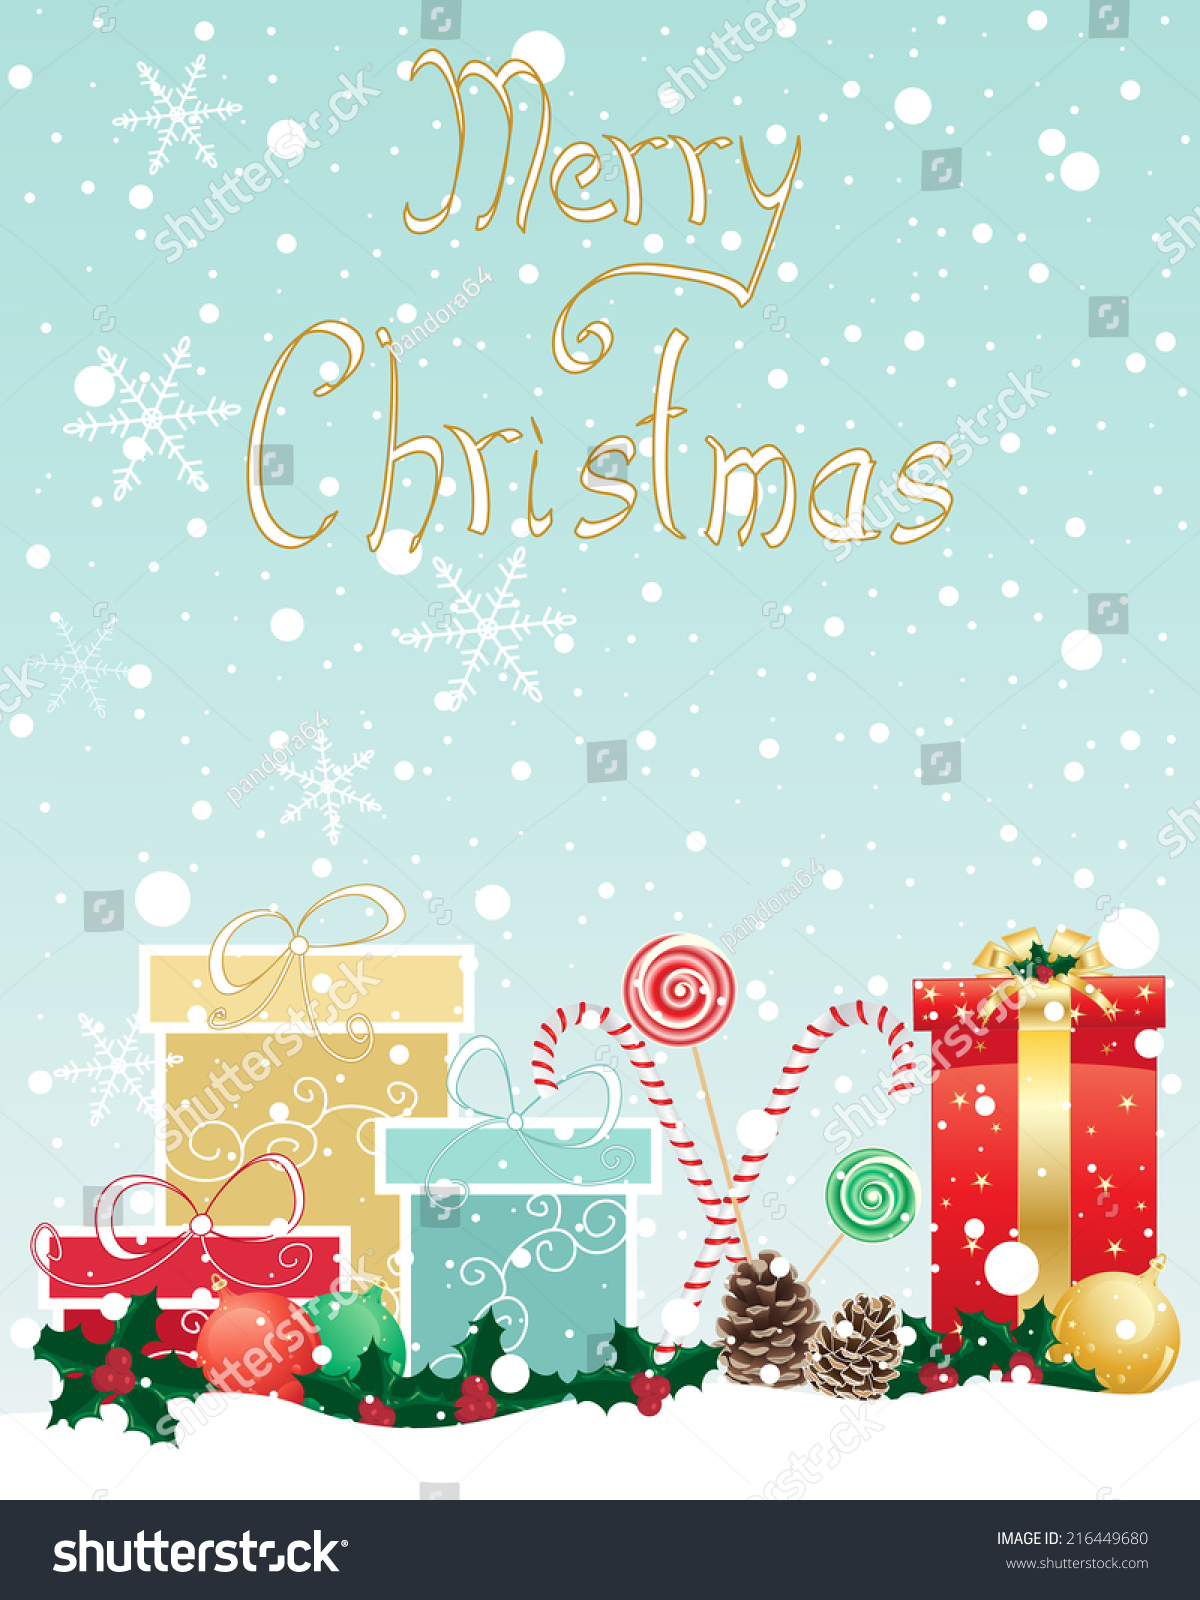 Illustration Christmas Greeting Card Wrapped Gifts Stock